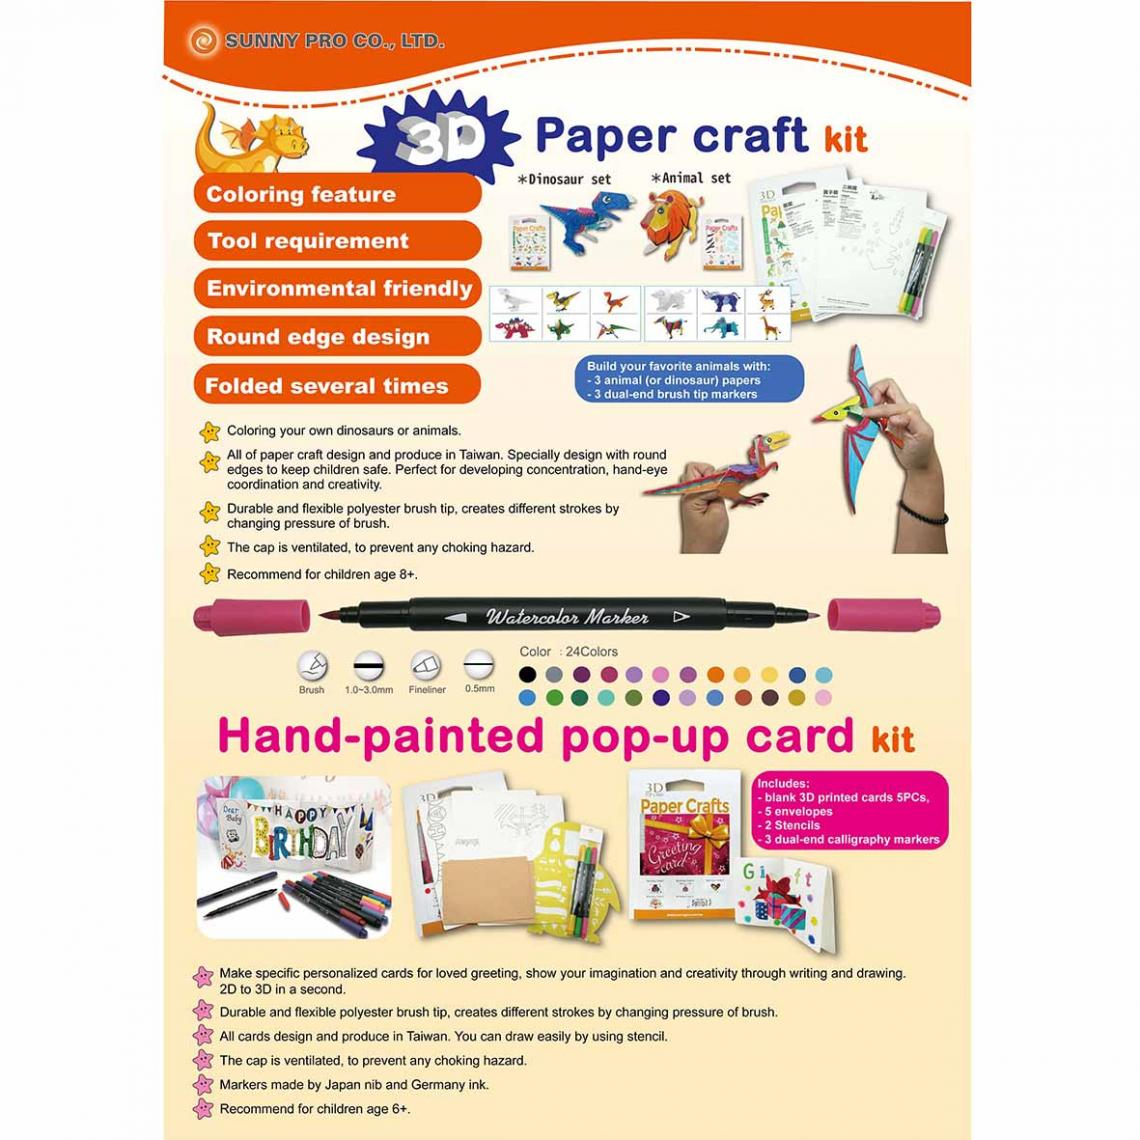 2019 newly launched Paper craft kit flyer